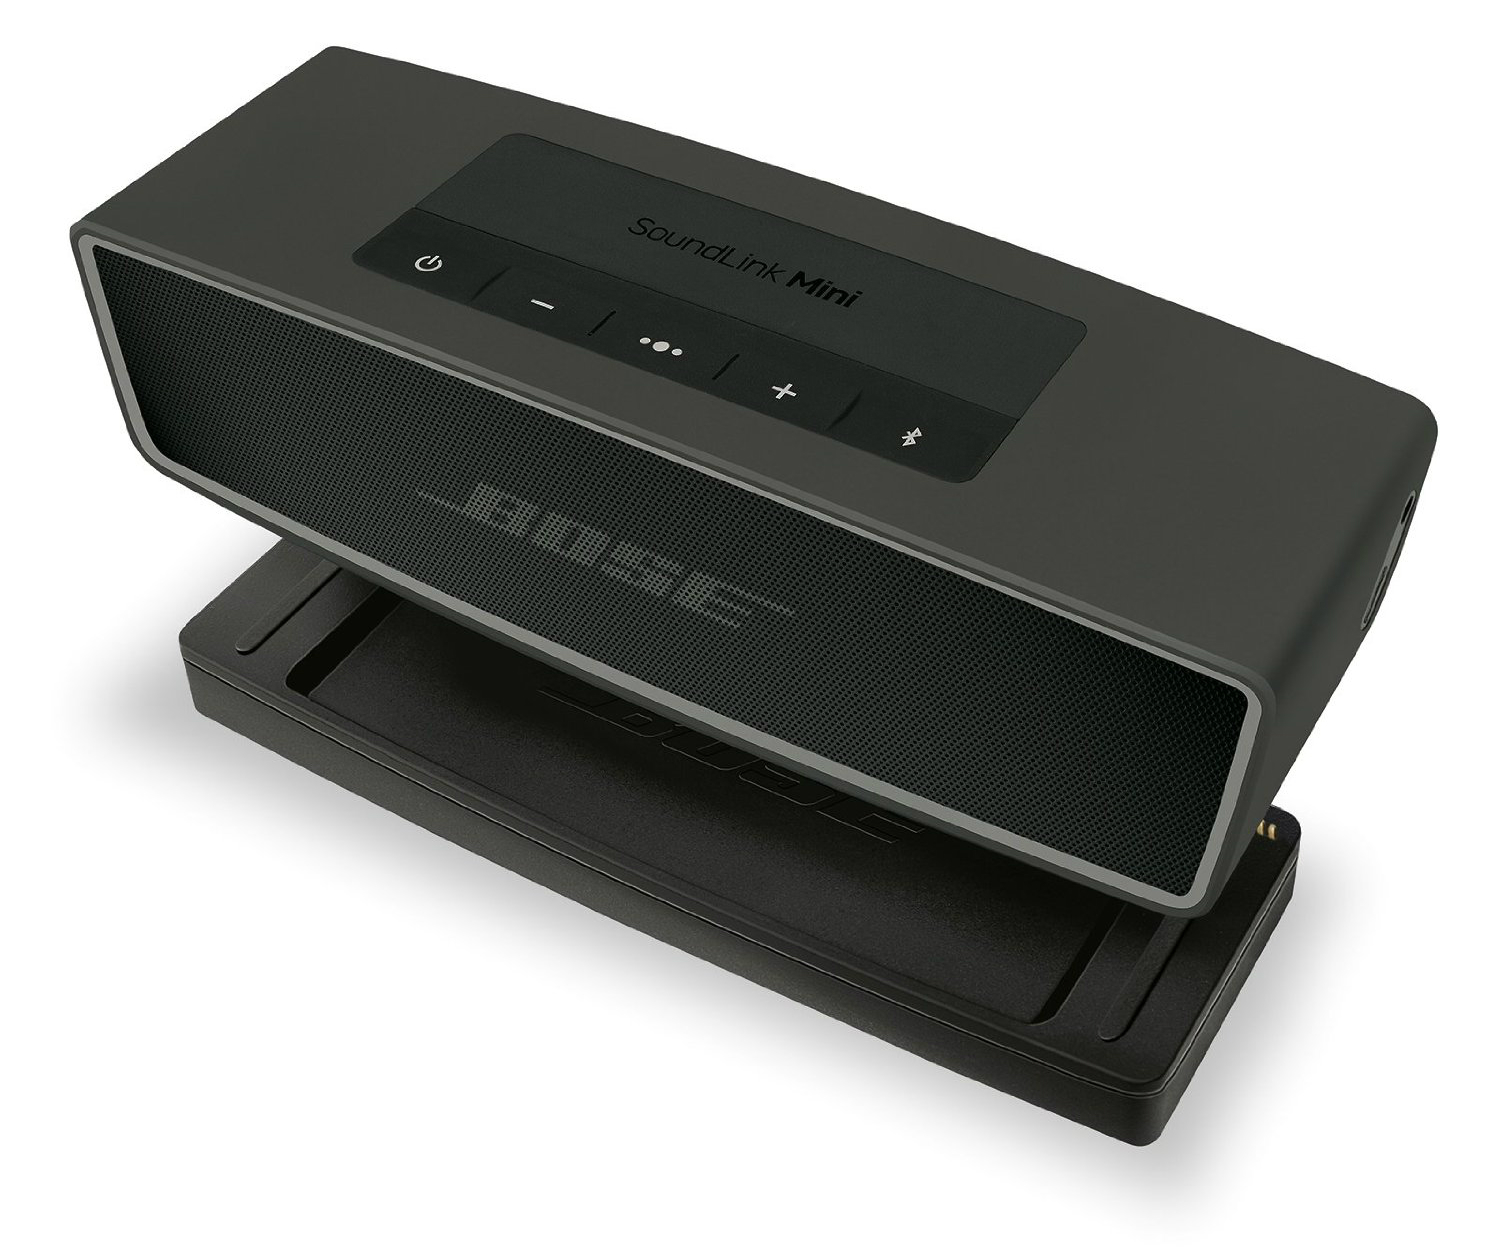 Bose SoundLink Mini II vs SoundLink Mini